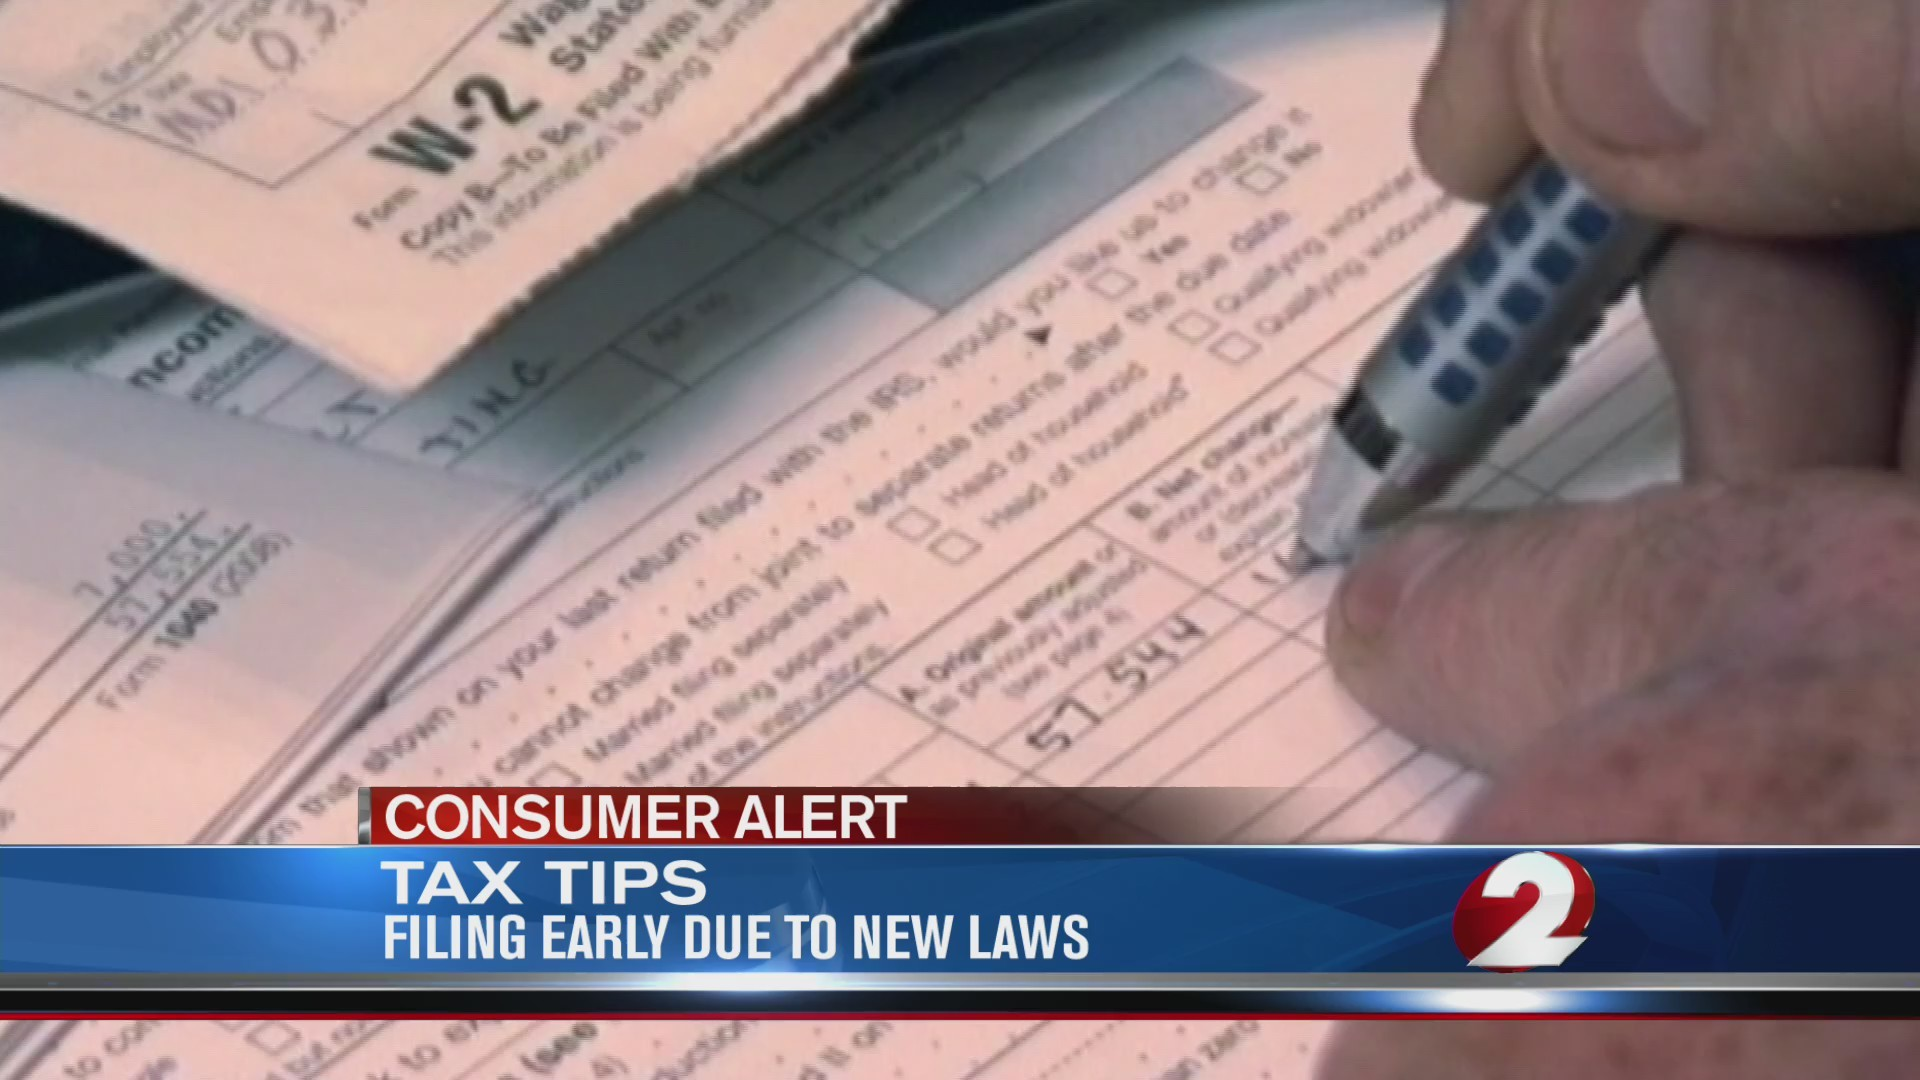 Tax tips; Filing early due to new laws